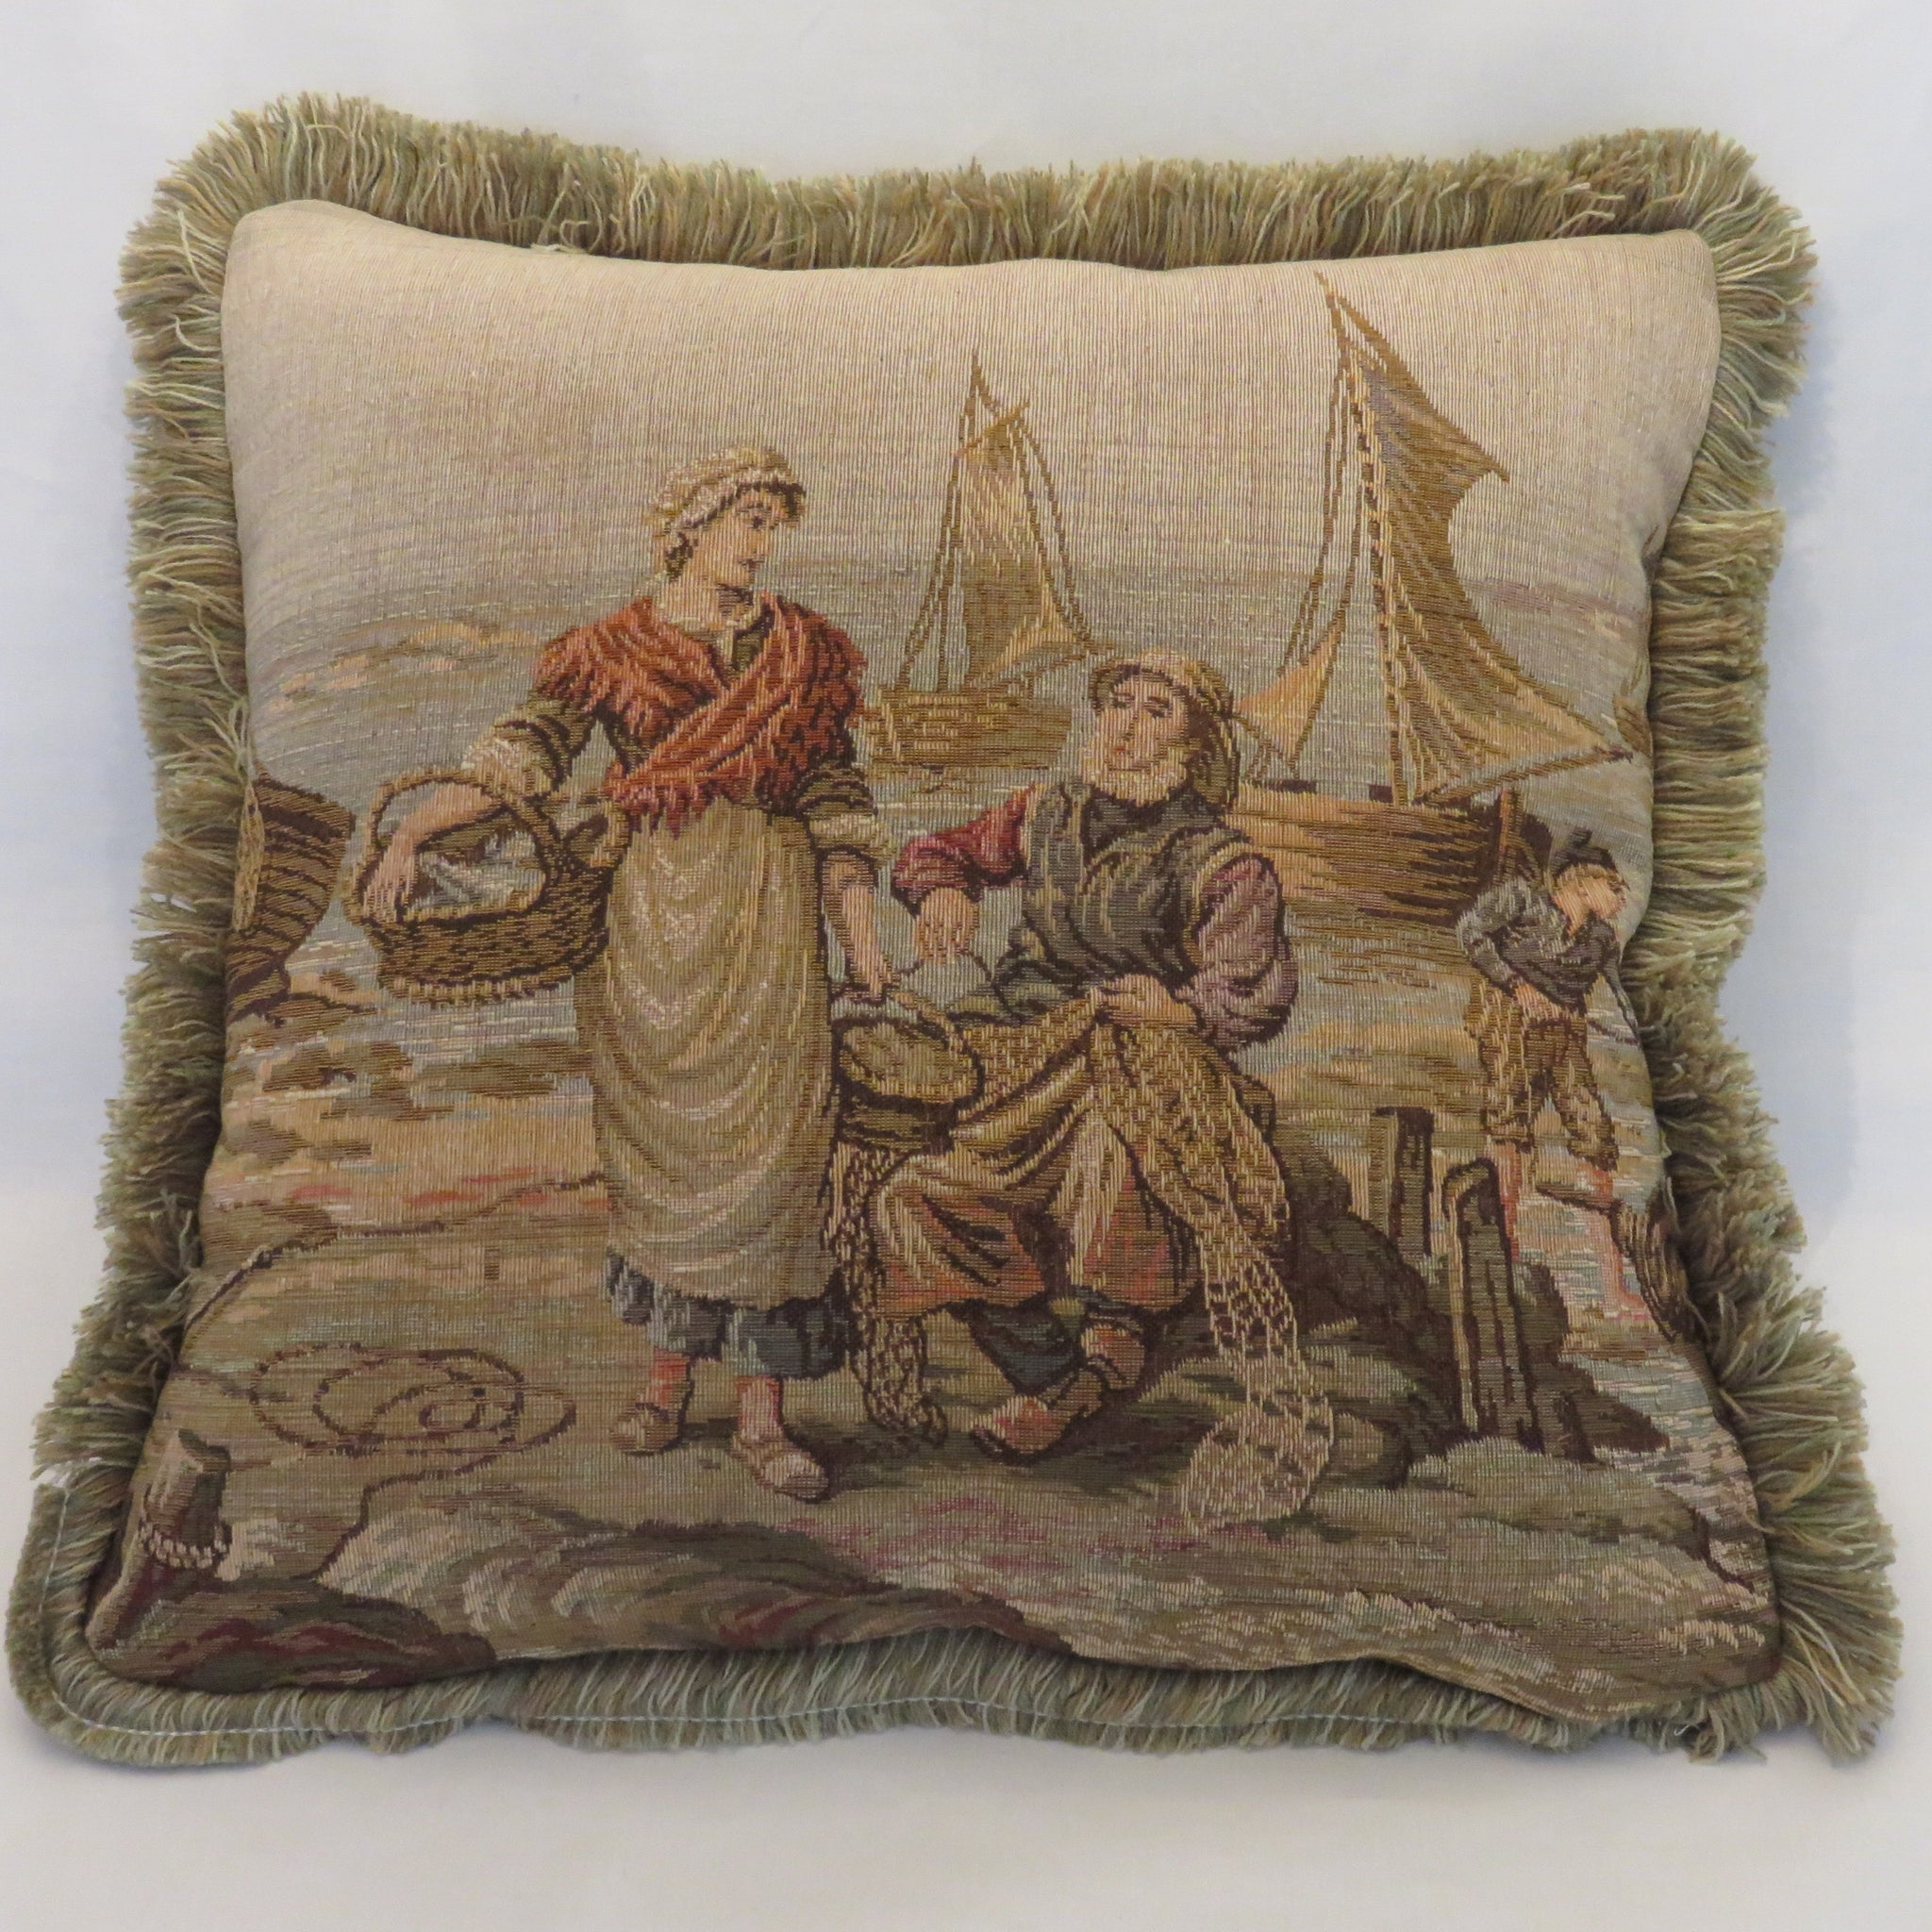 Fisherman scenic tapestry pillow cover